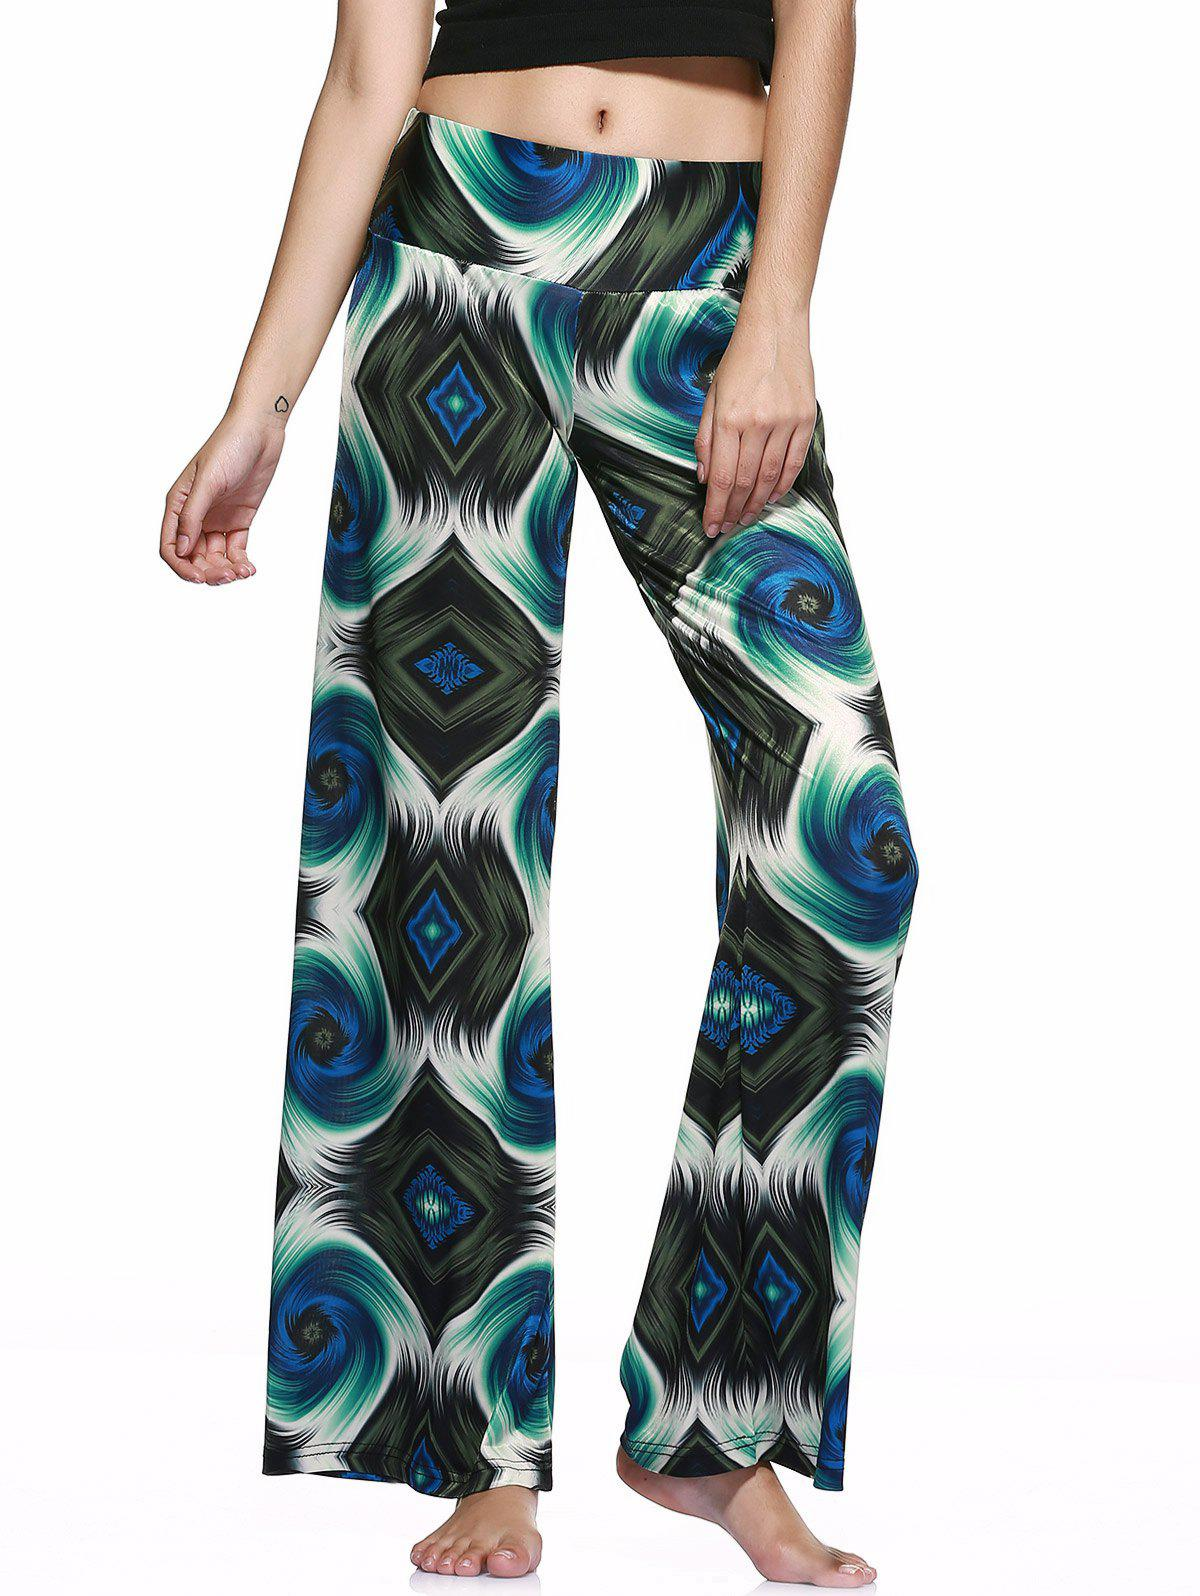 Casual Style Elastic Waist Printed Loose-Fitting Pants For Women - GREEN S